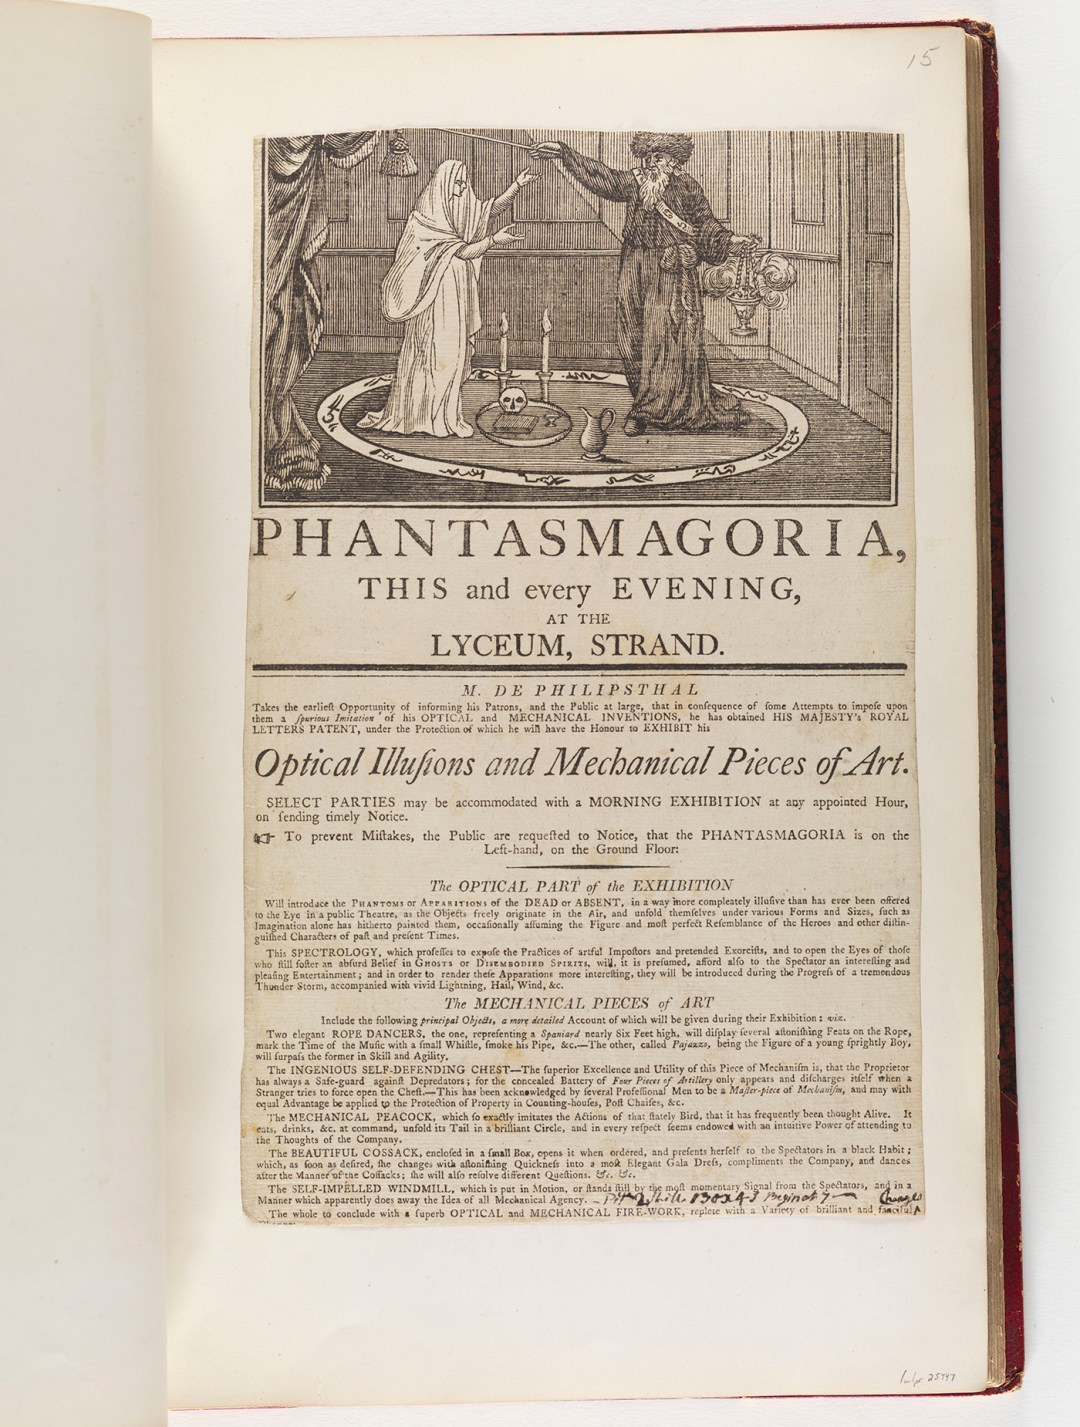 """Playbill advertising Paul de Philipsthal's """"Phantasmagoria"""" show at the Lyceum Theatre in the Strand, London (1801), woodcut and letterpress (courtesy the Lewis Walpole Library, Yale University)"""